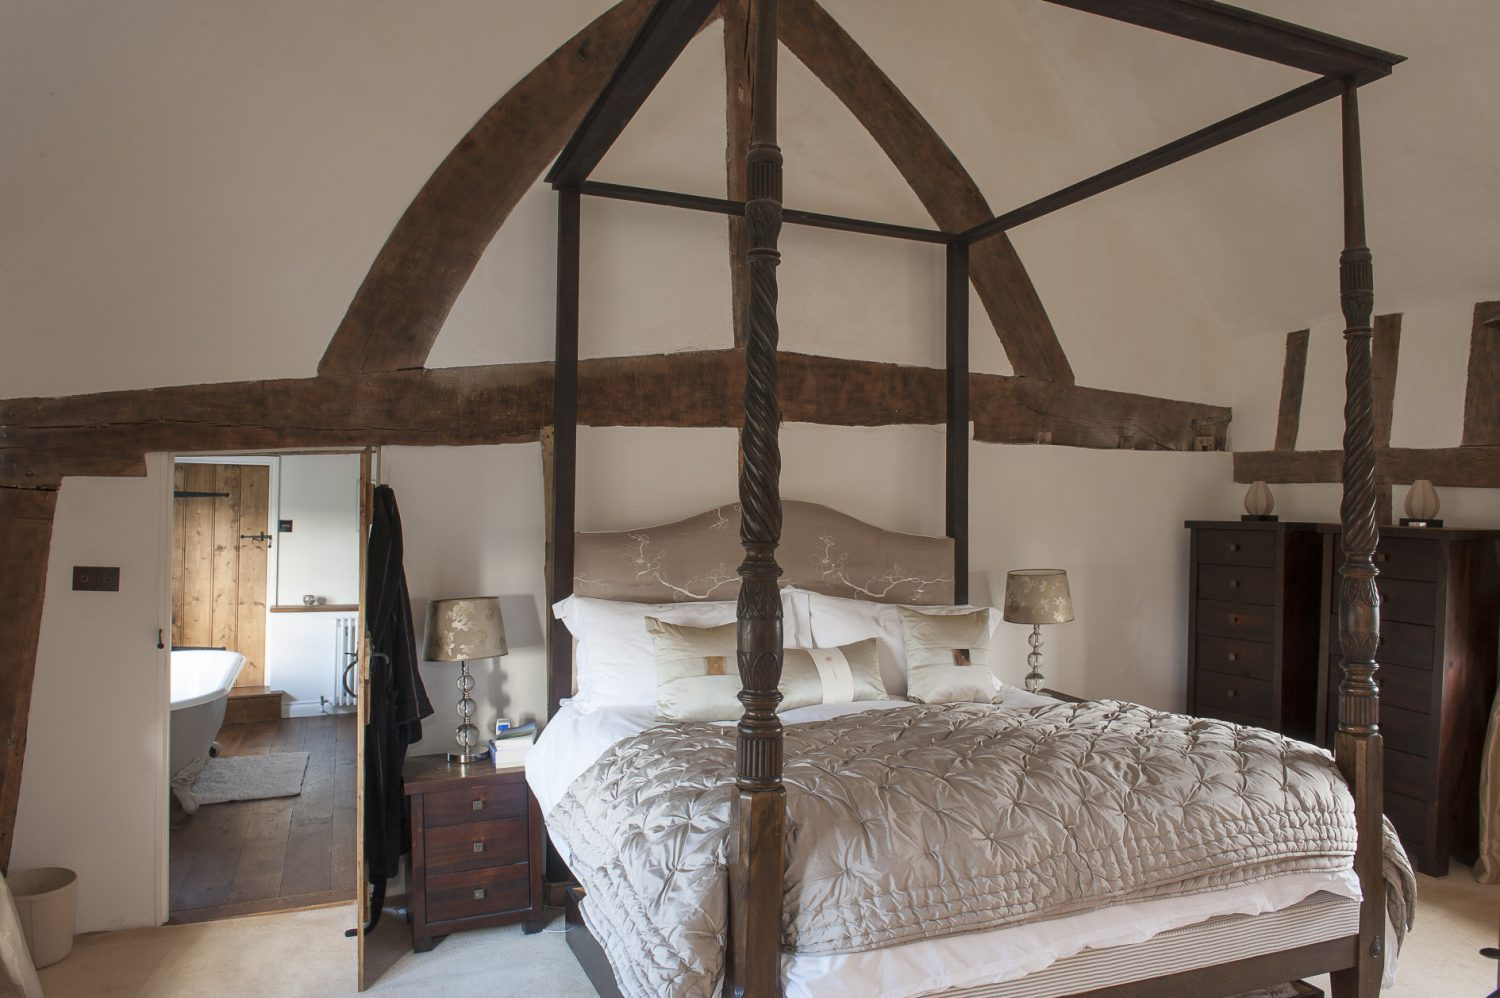 The master bedroom is stunning with star billing going to a vast and magnificent four posterThe master bedroom is stunning with star billing going to a vast and magnificent four poster